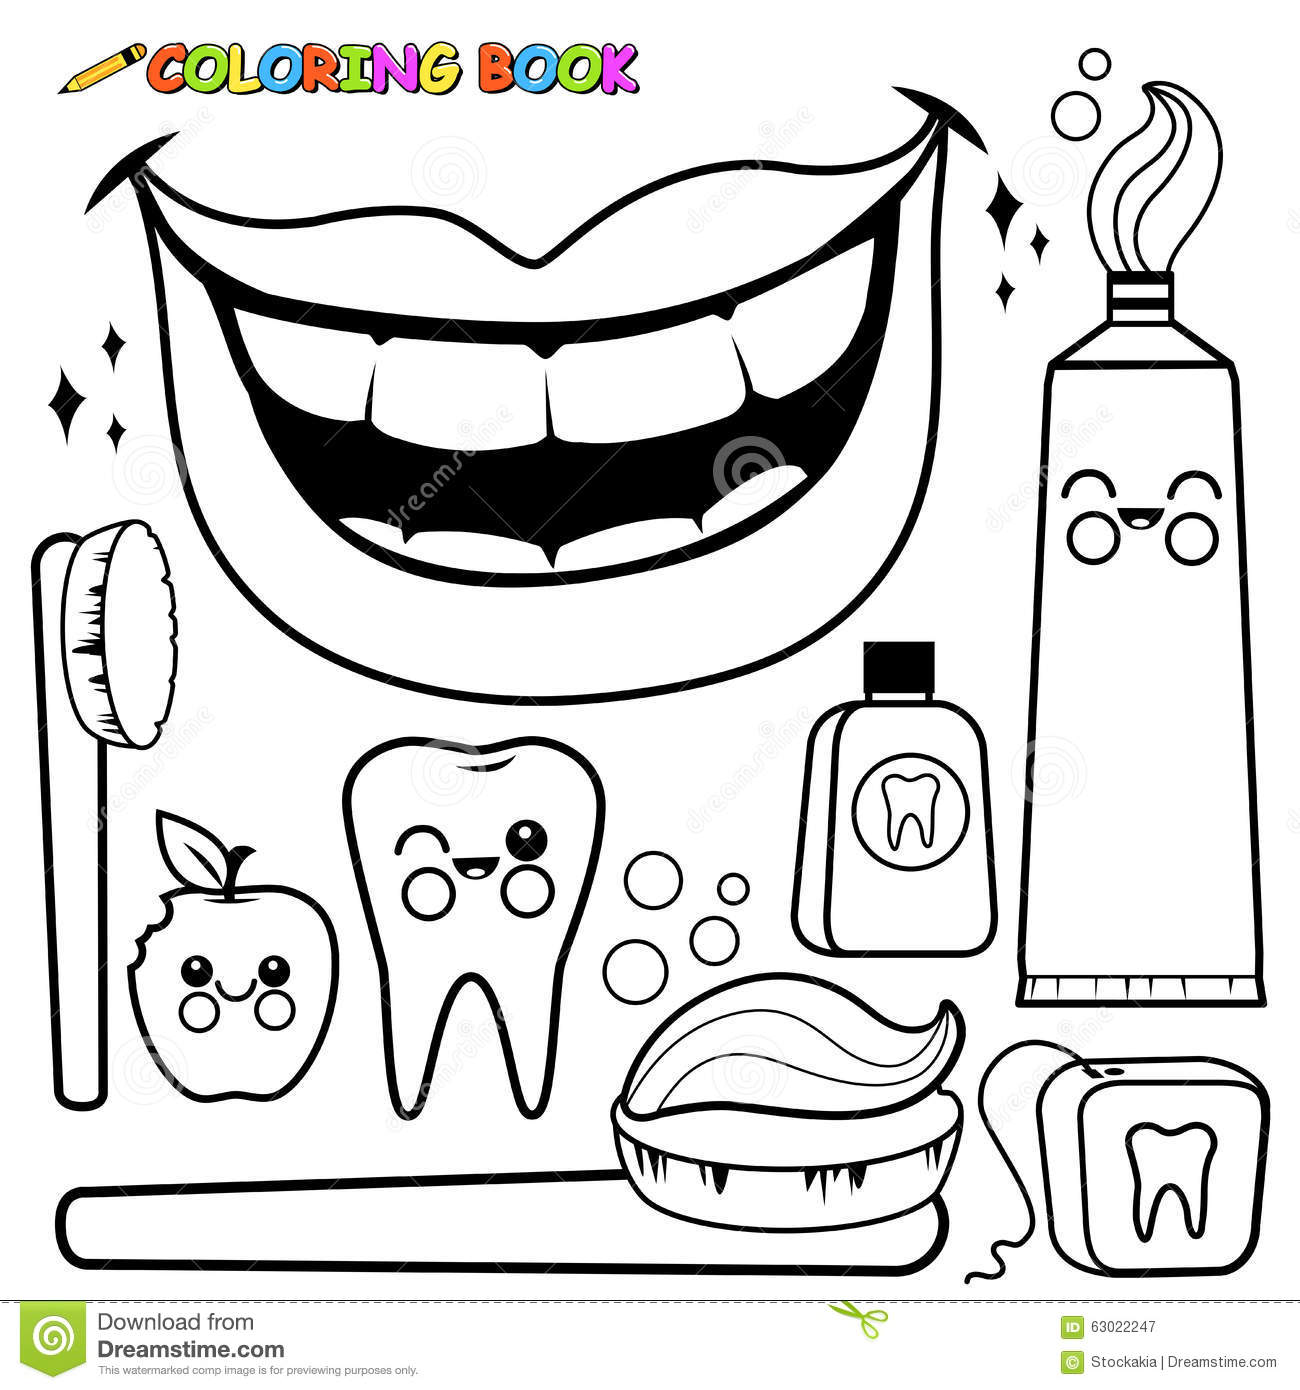 Braces clipart black and white. Opportunities coloring pages dentist